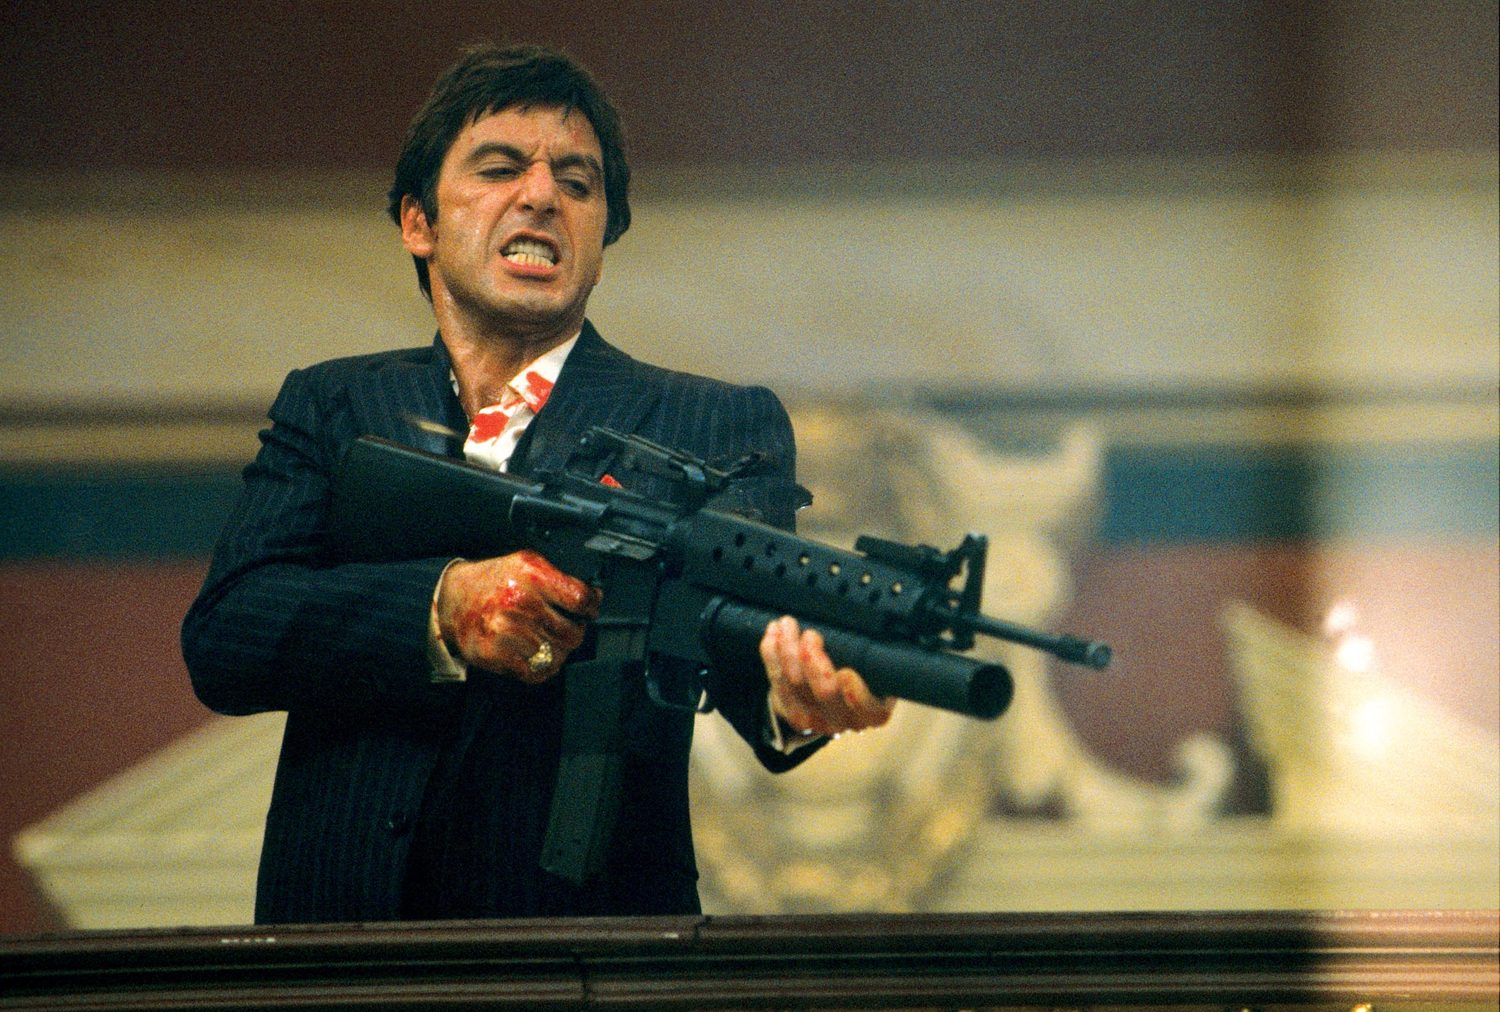 Antoine Fuqua's 'Scarface' Remake Says Hello to Filming This Fall